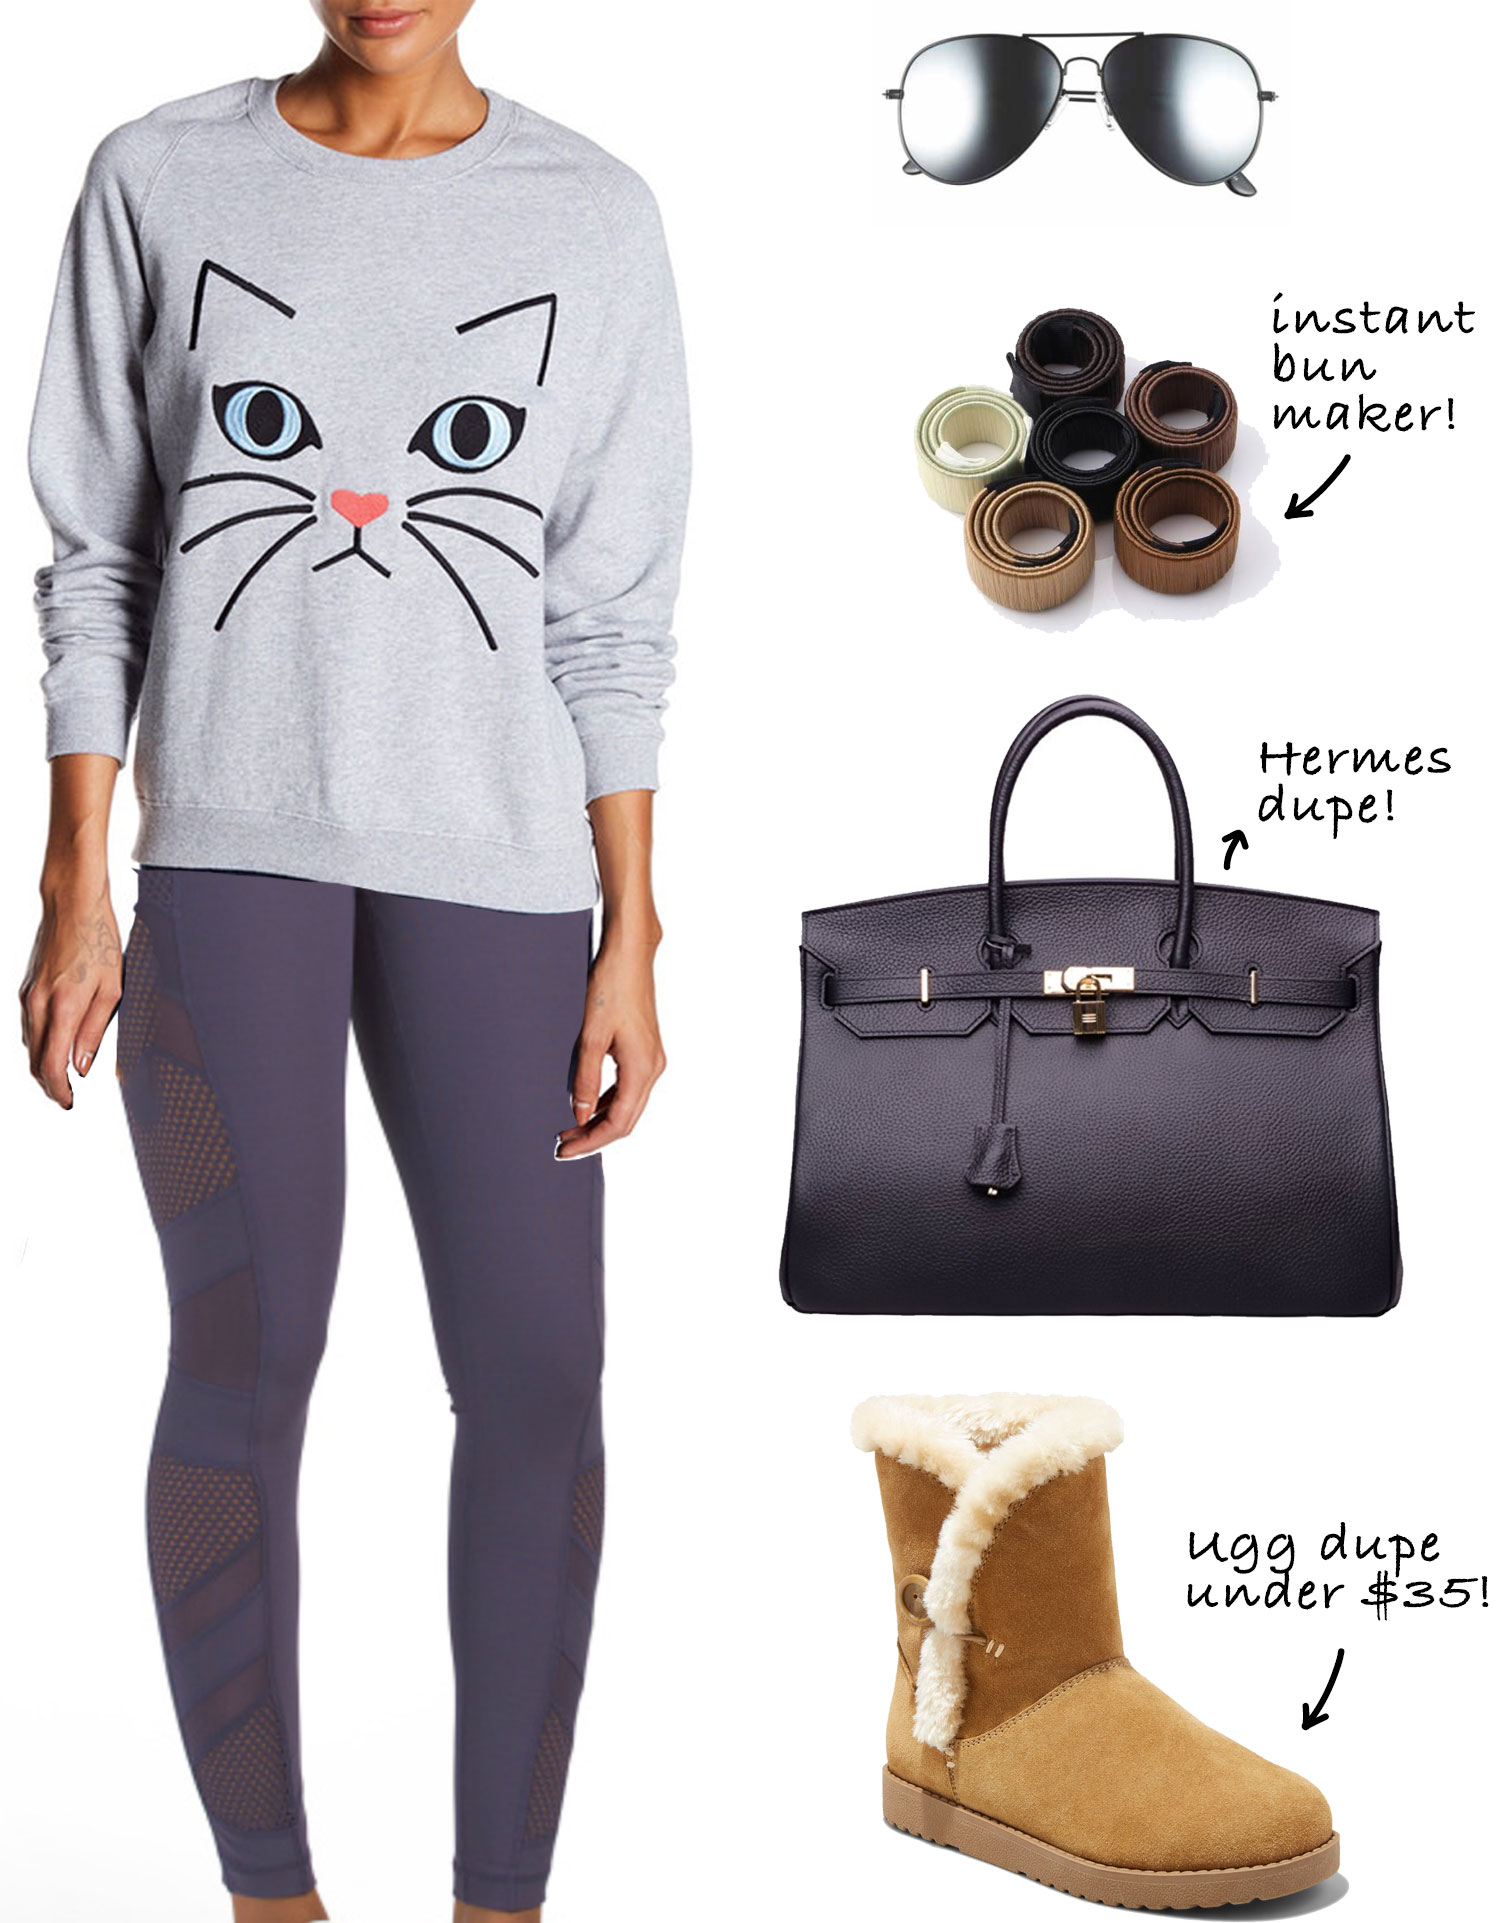 J. Lo's post-workout style: Cat sweatshirt, mesh panel leggings and Ugg boots